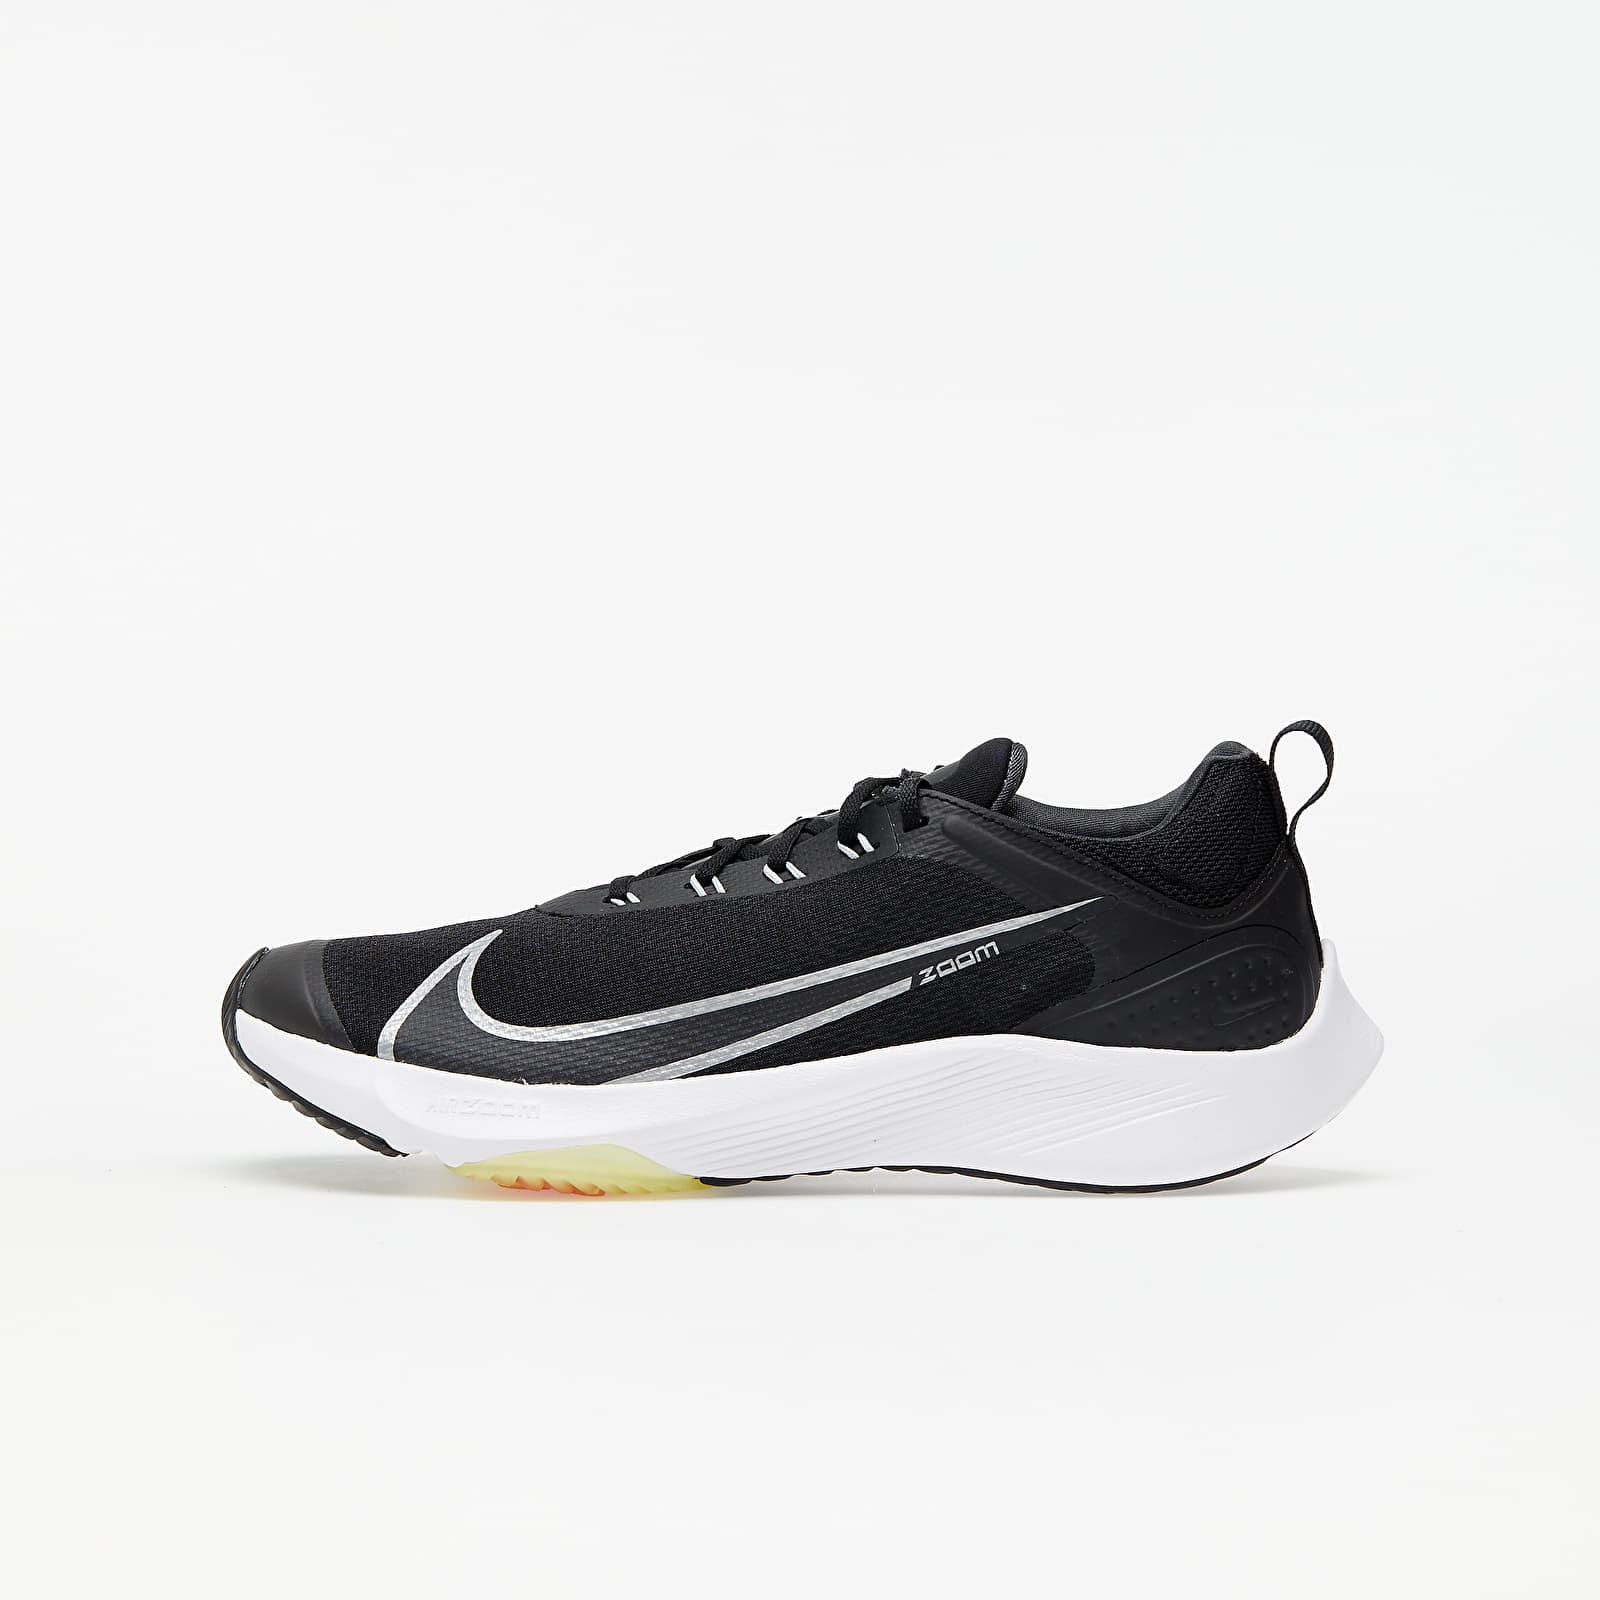 Nike Air Zoom Speed GS Black/ Metallic Silver-White-Volt EUR 40